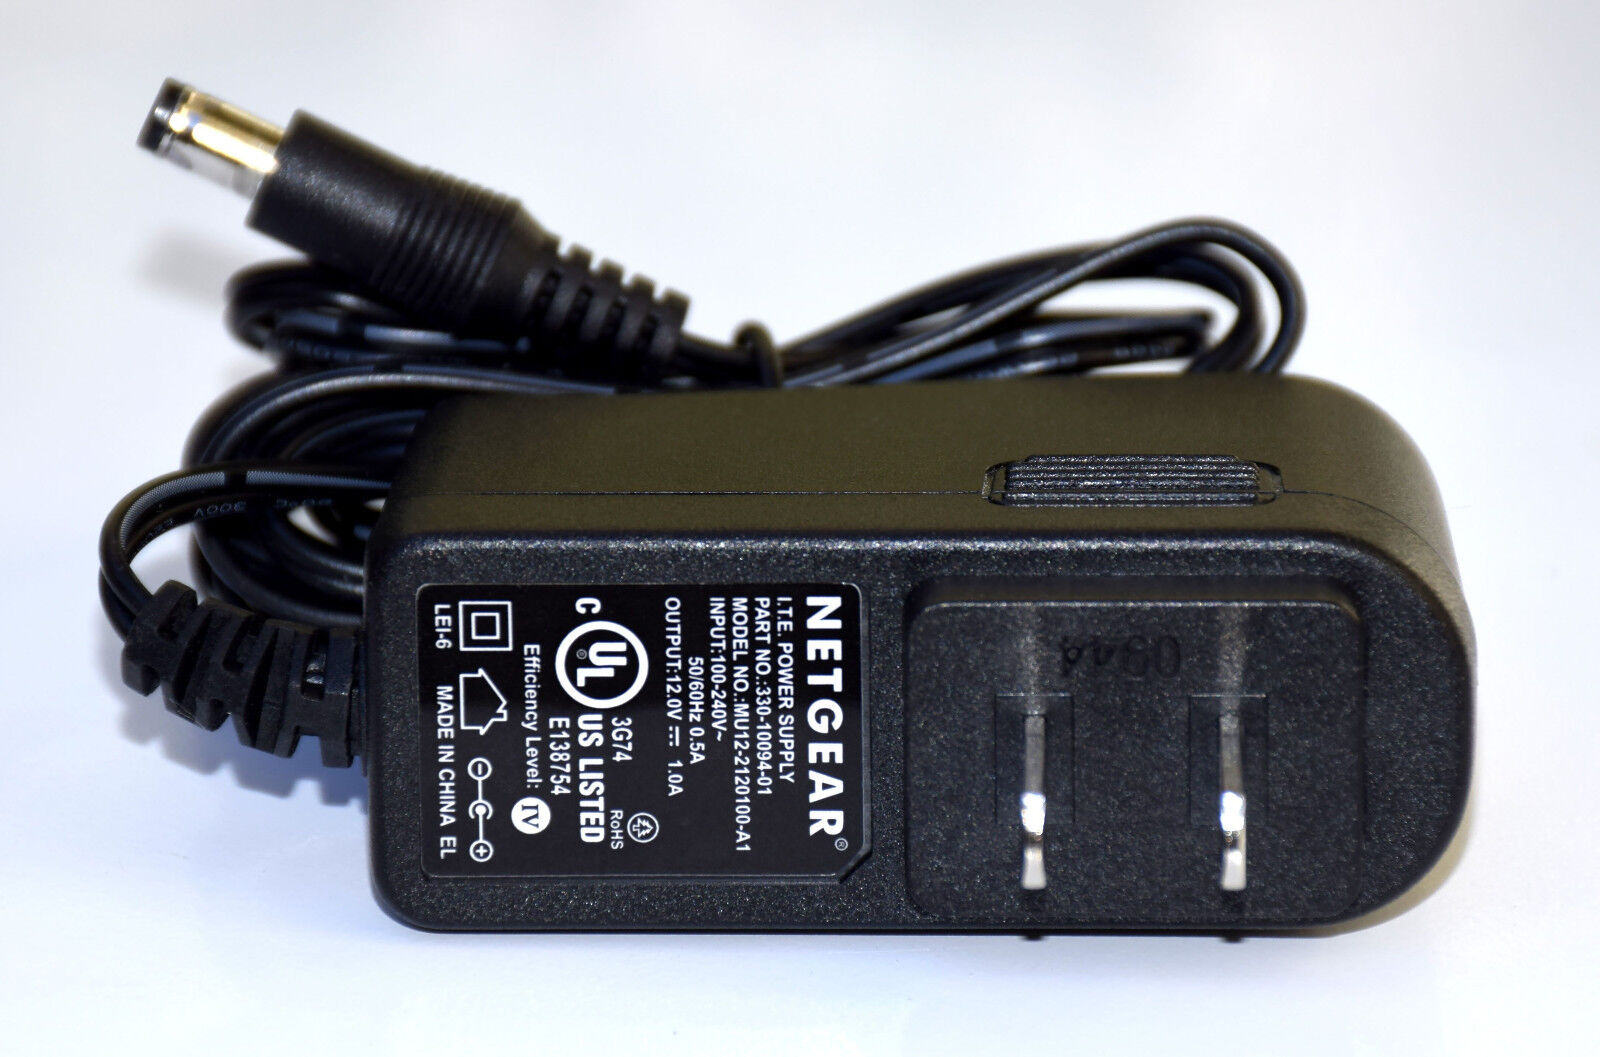 New Power Supply Adapter 100-240 volts Output 12VDC, 1.0A (5.5mm x 2.1mm)